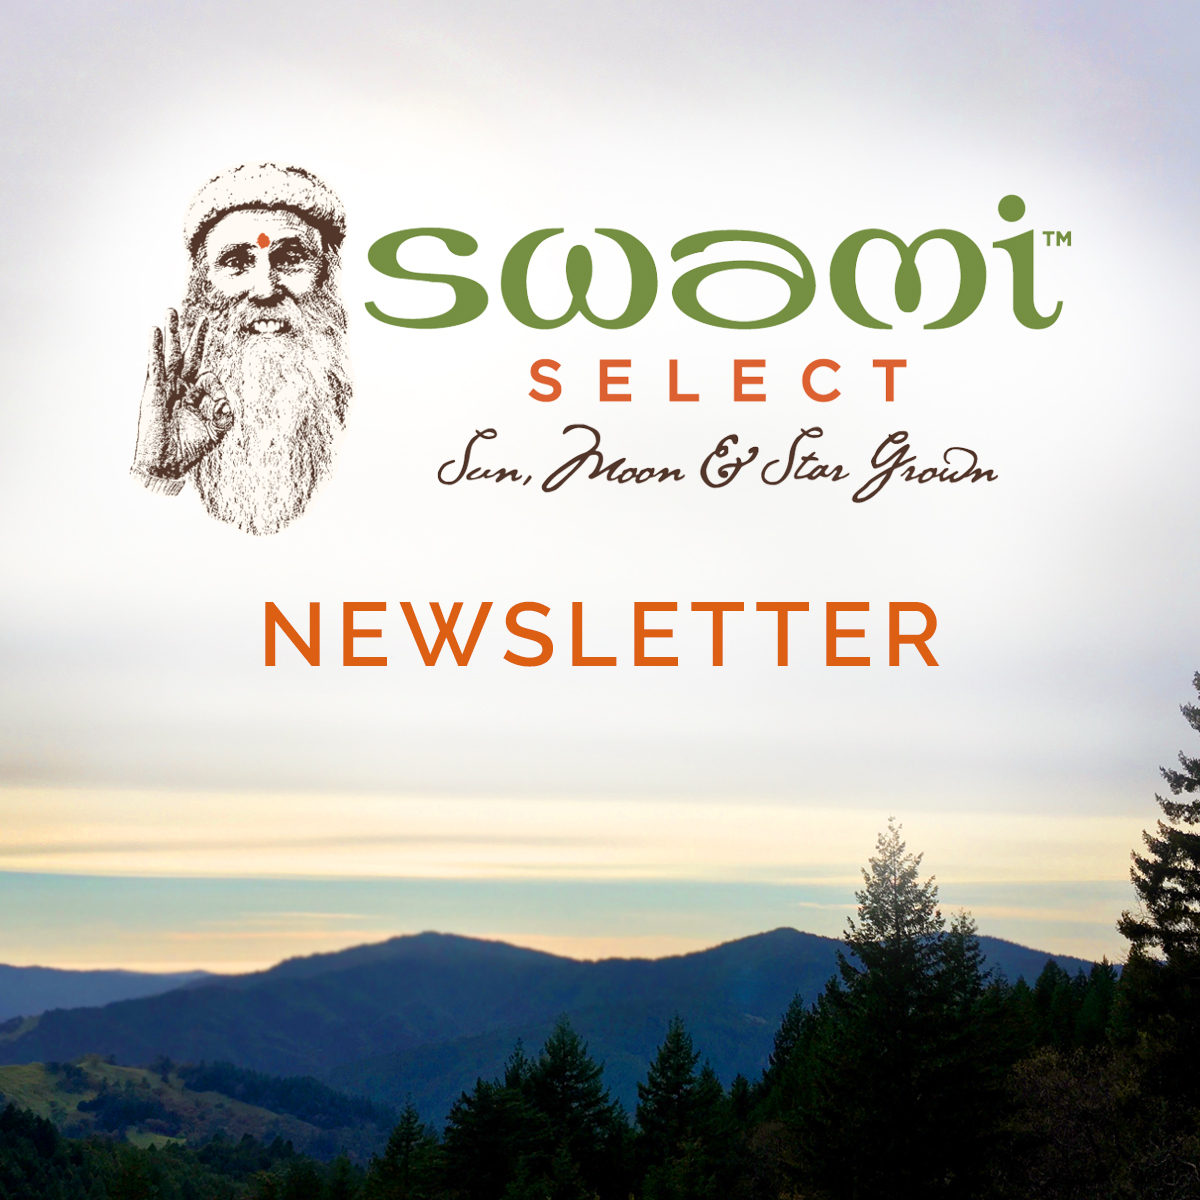 Swami Select Newsletter